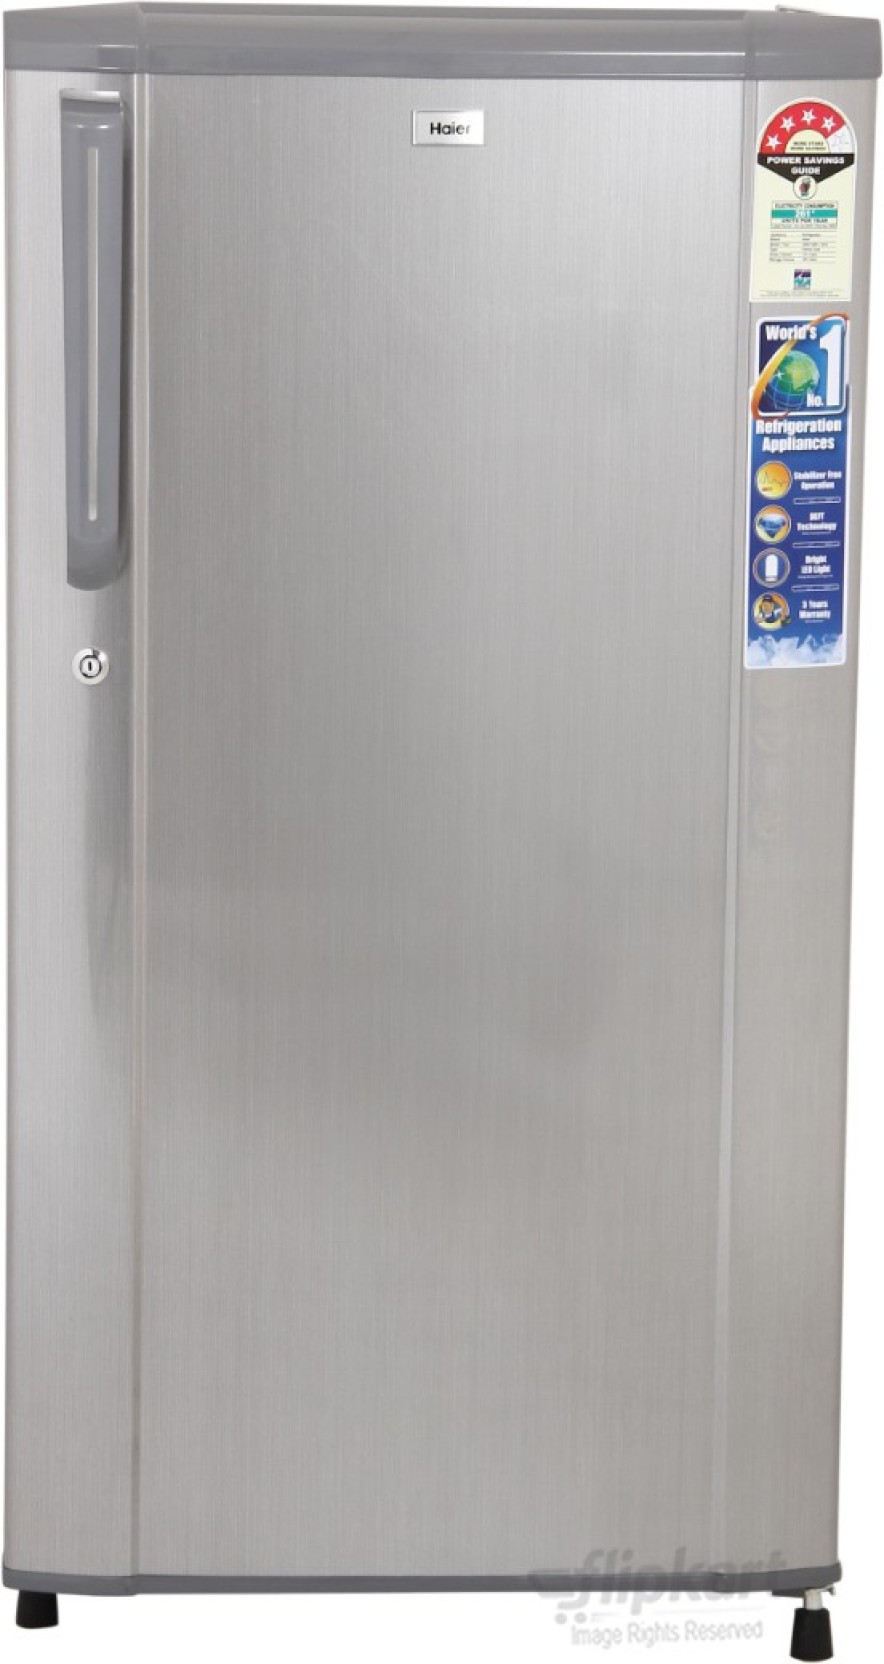 Haier 170 L Direct Cool Single Door Refrigerator Online At